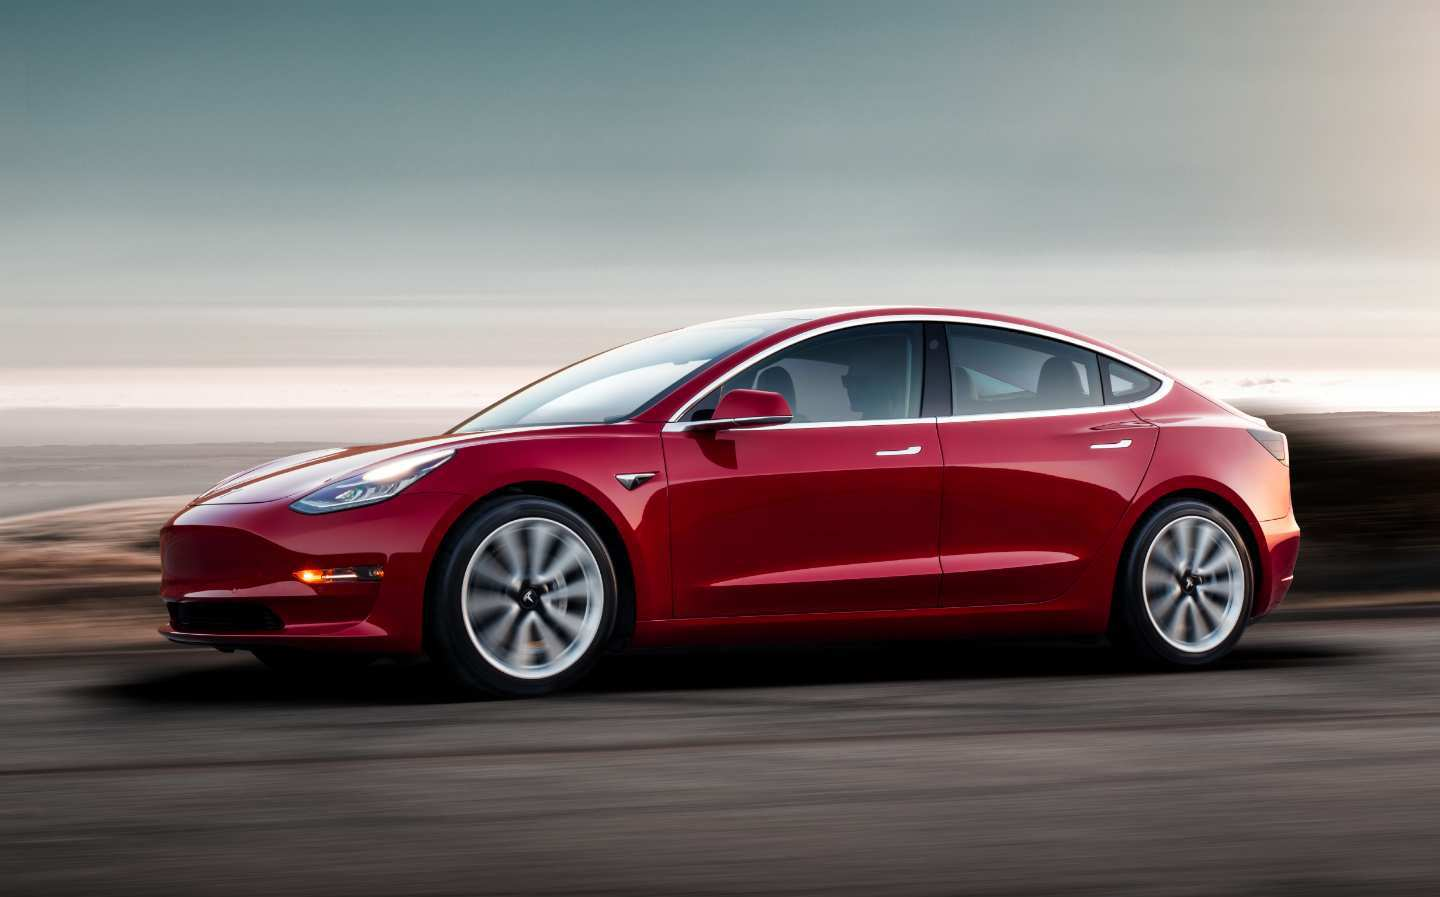 76 The Best 2019 Tesla 3 Review And Release Date